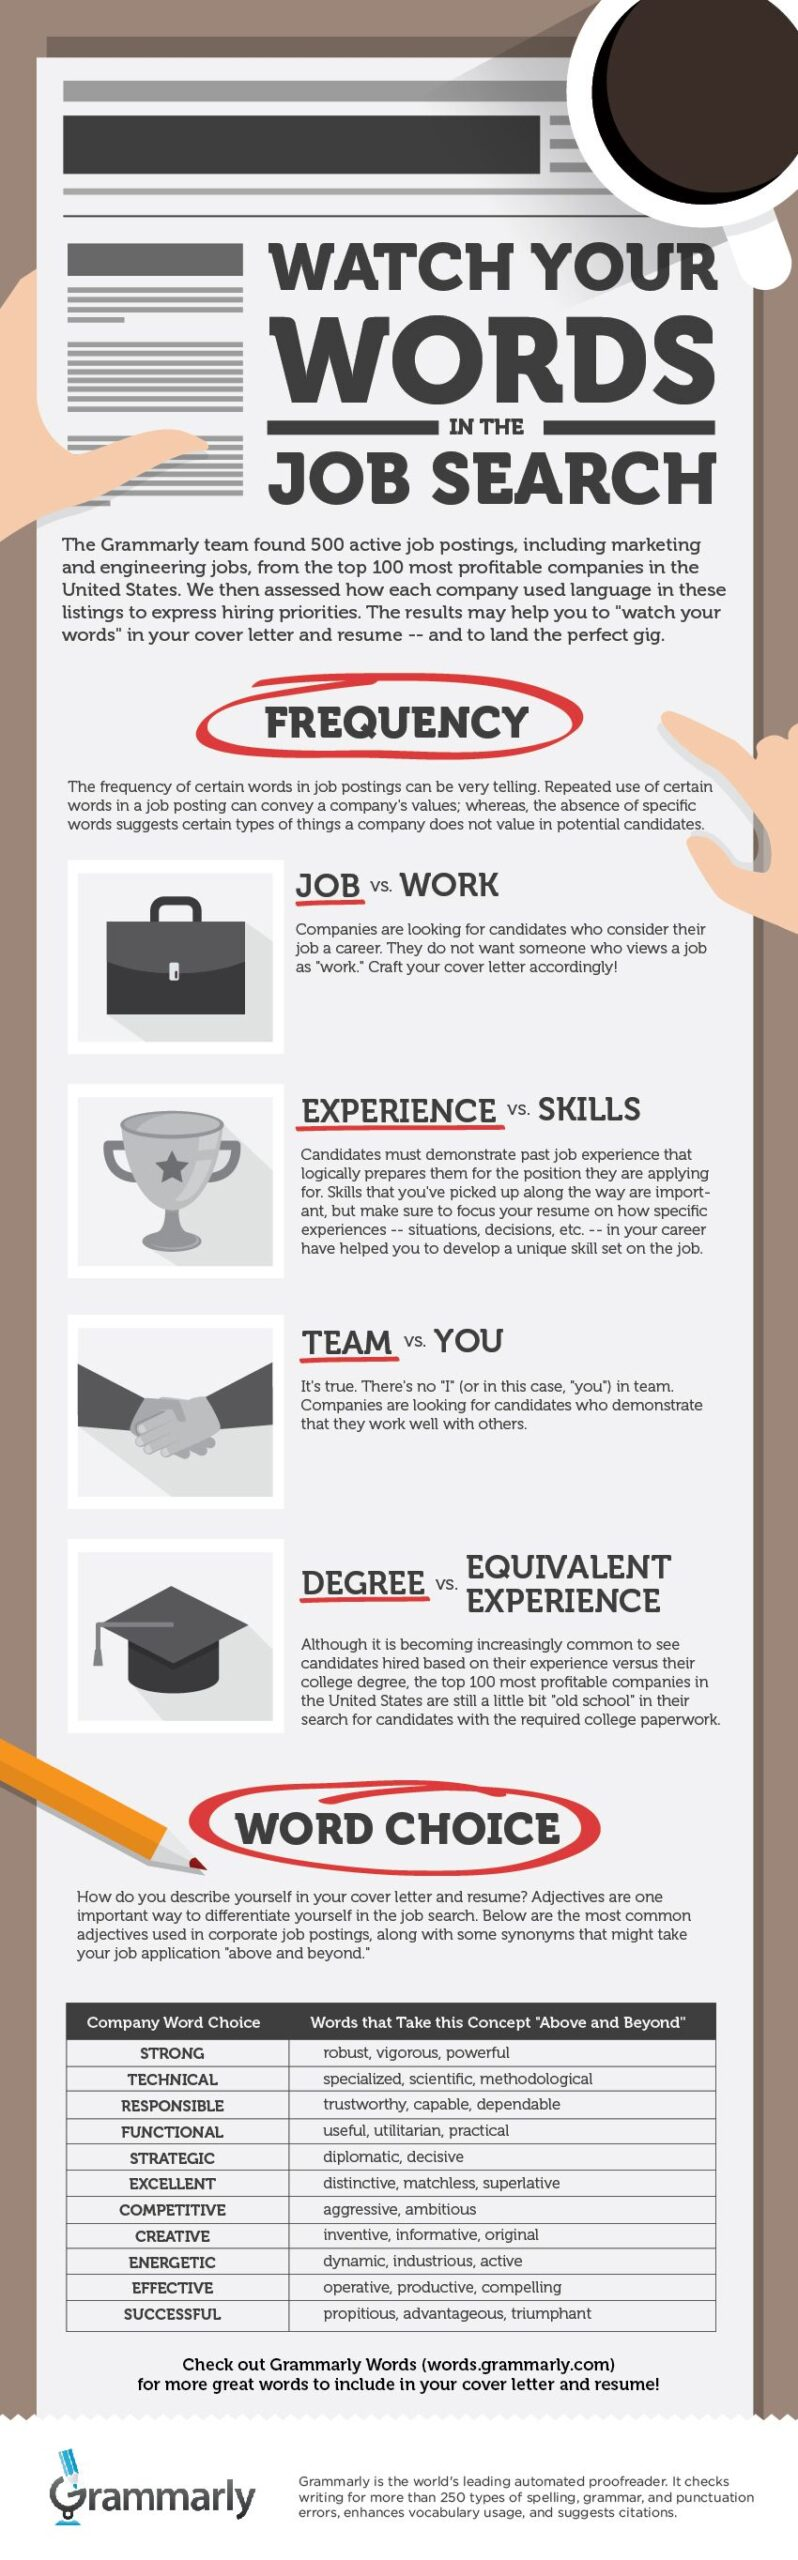 use job search keywords to land your next gig flexjobs tips interview grammarly resume Resume Grammarly Resume Writing